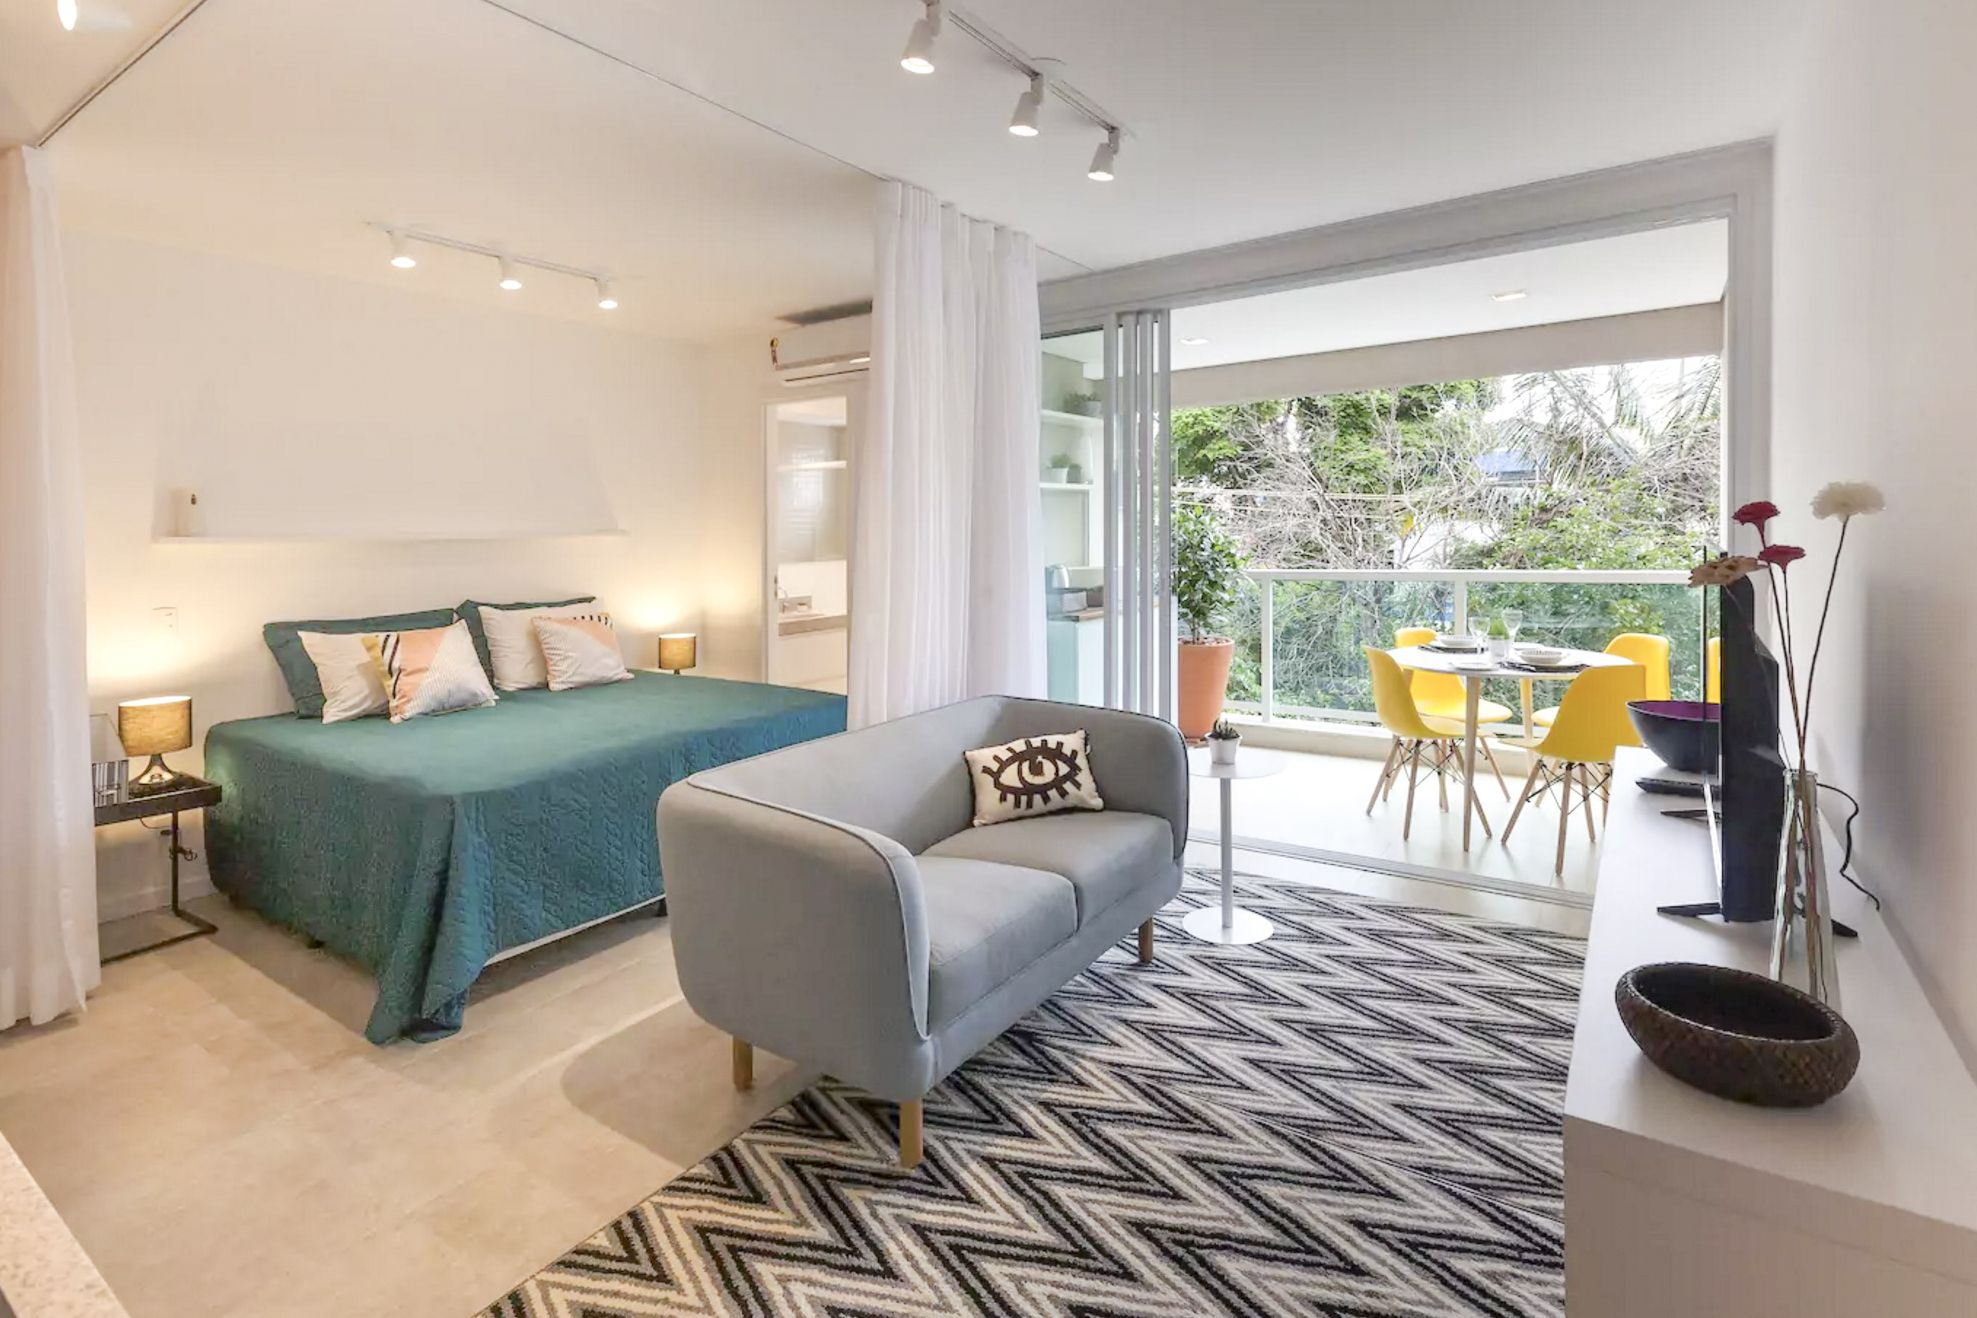 Airbnb in Sao Paulo